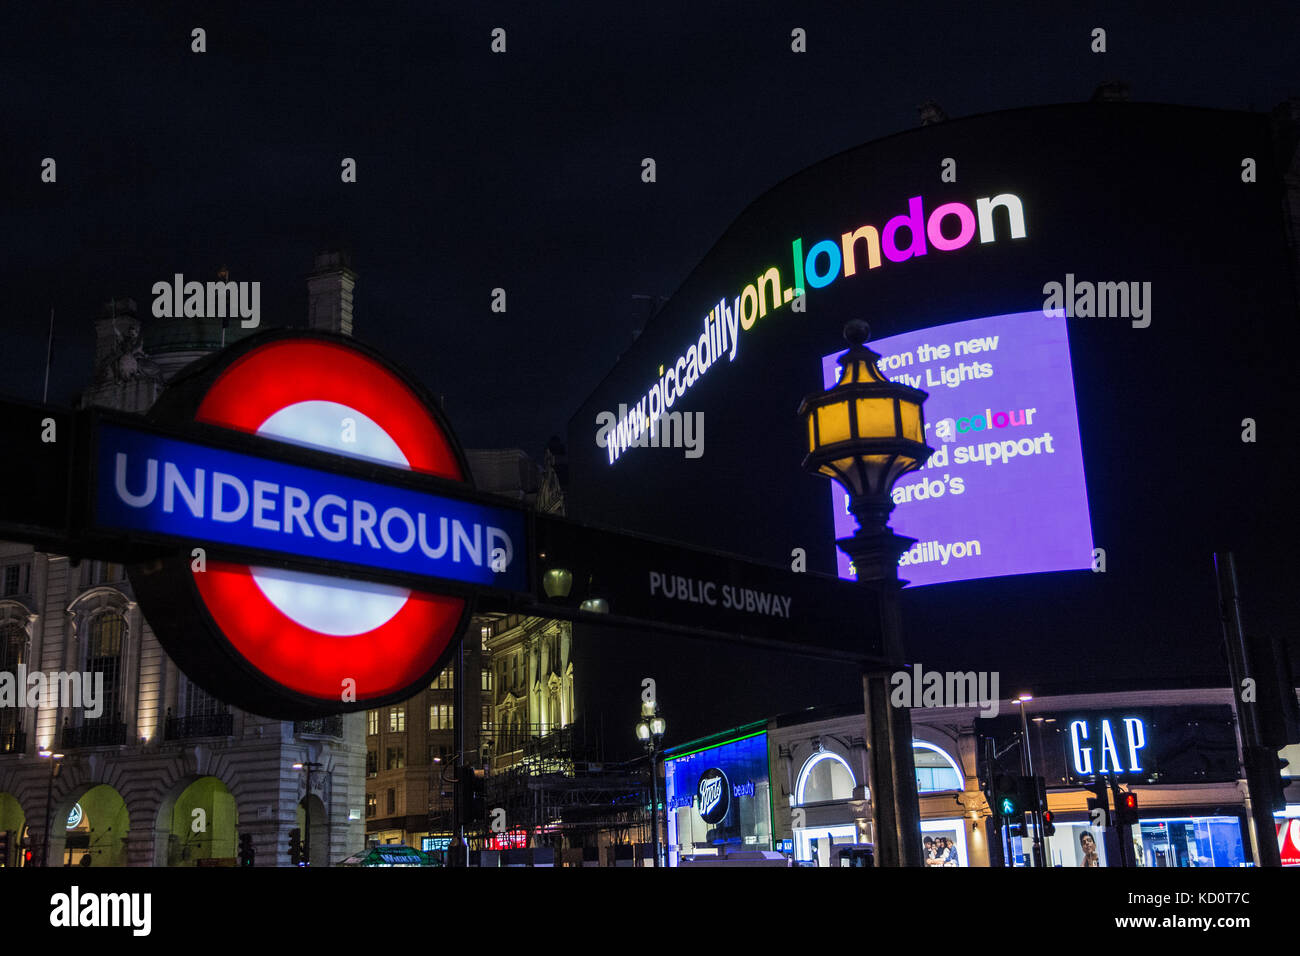 London, England, UK. 08th Oct, 2017. Piccadilly Lights - after nine-months of darkness, London's most prominent - Stock Image